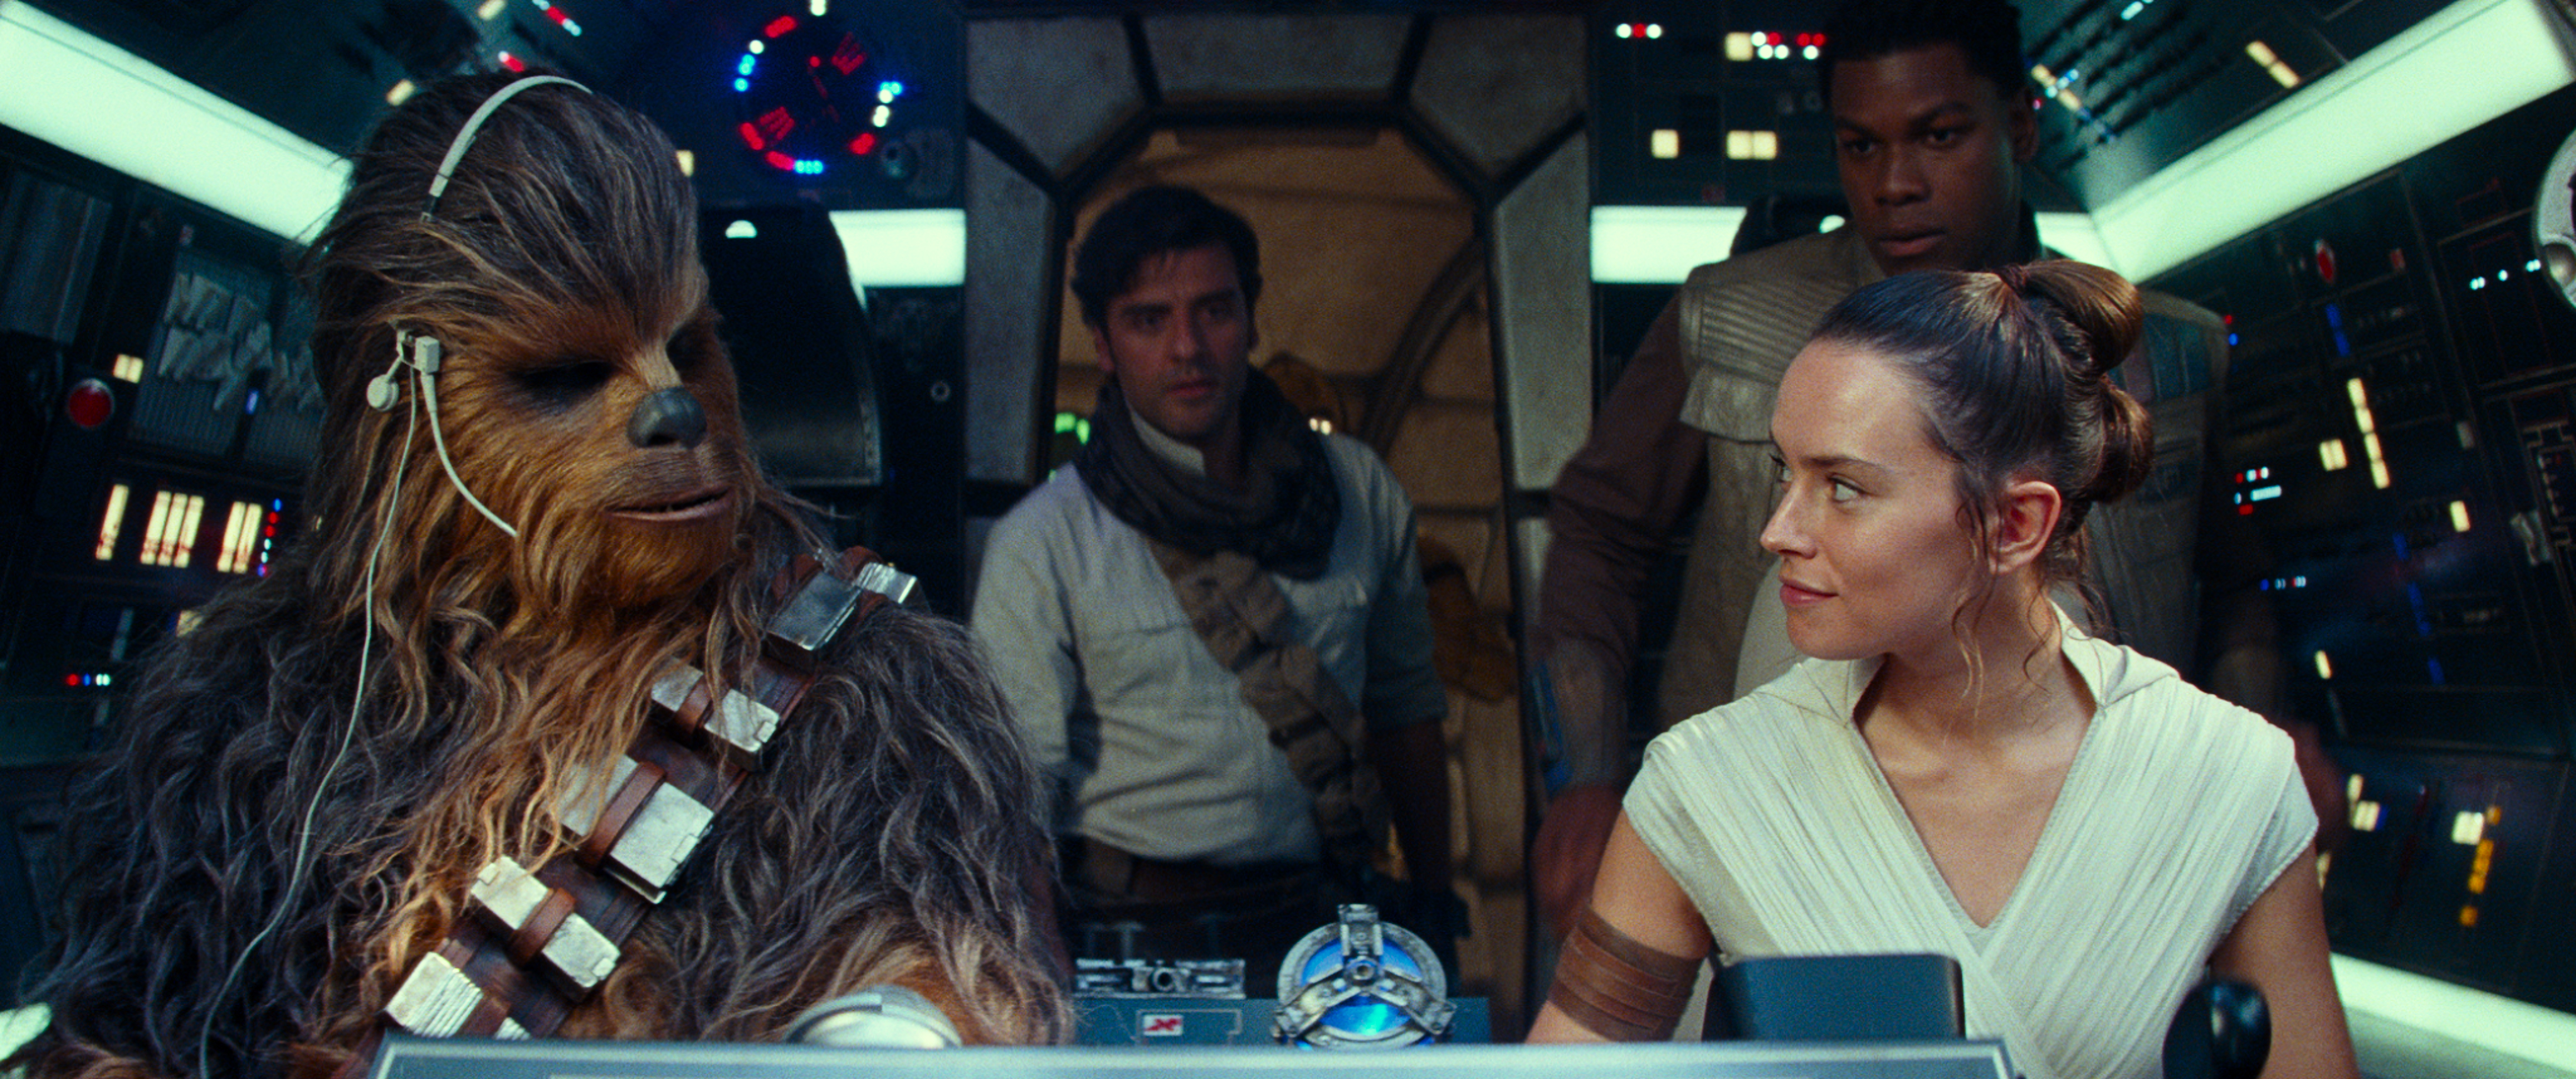 What The Star Wars Legacy Means To The Cast And Crew Of The Rise Of Skywalker